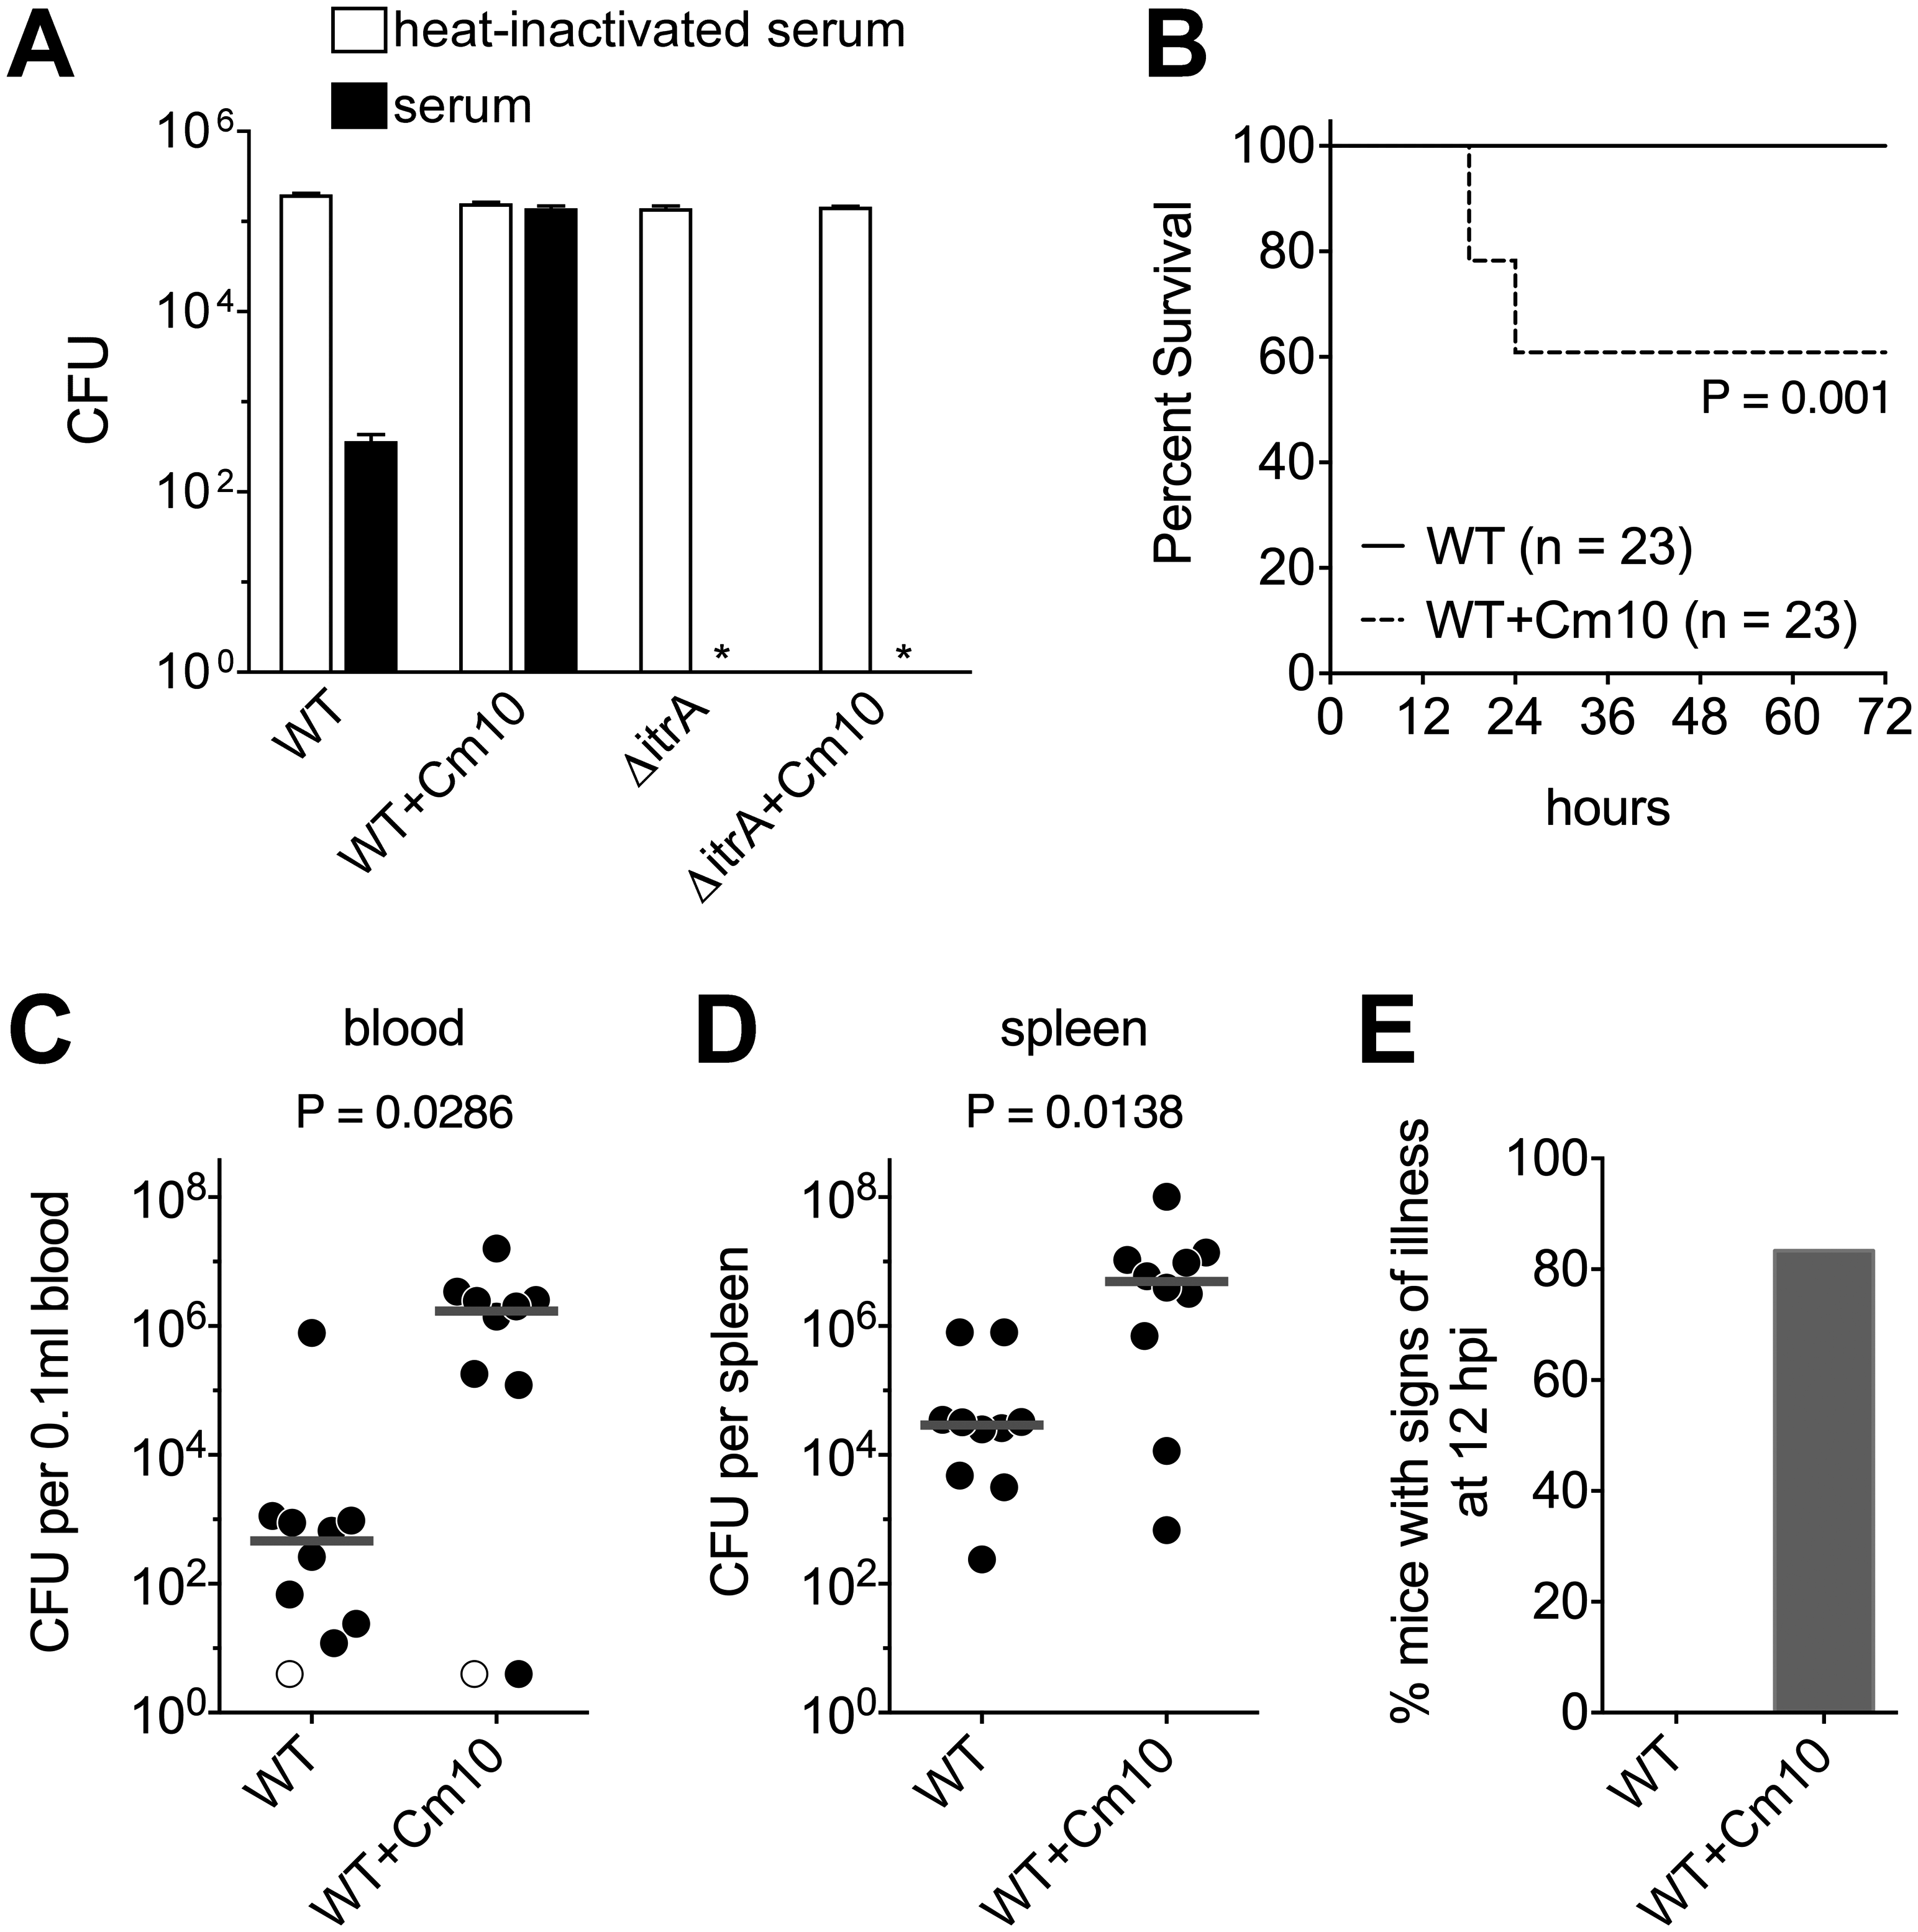 Antibiotic-induced exopolysaccharide hyperproduction increases serum resistance and virulence.